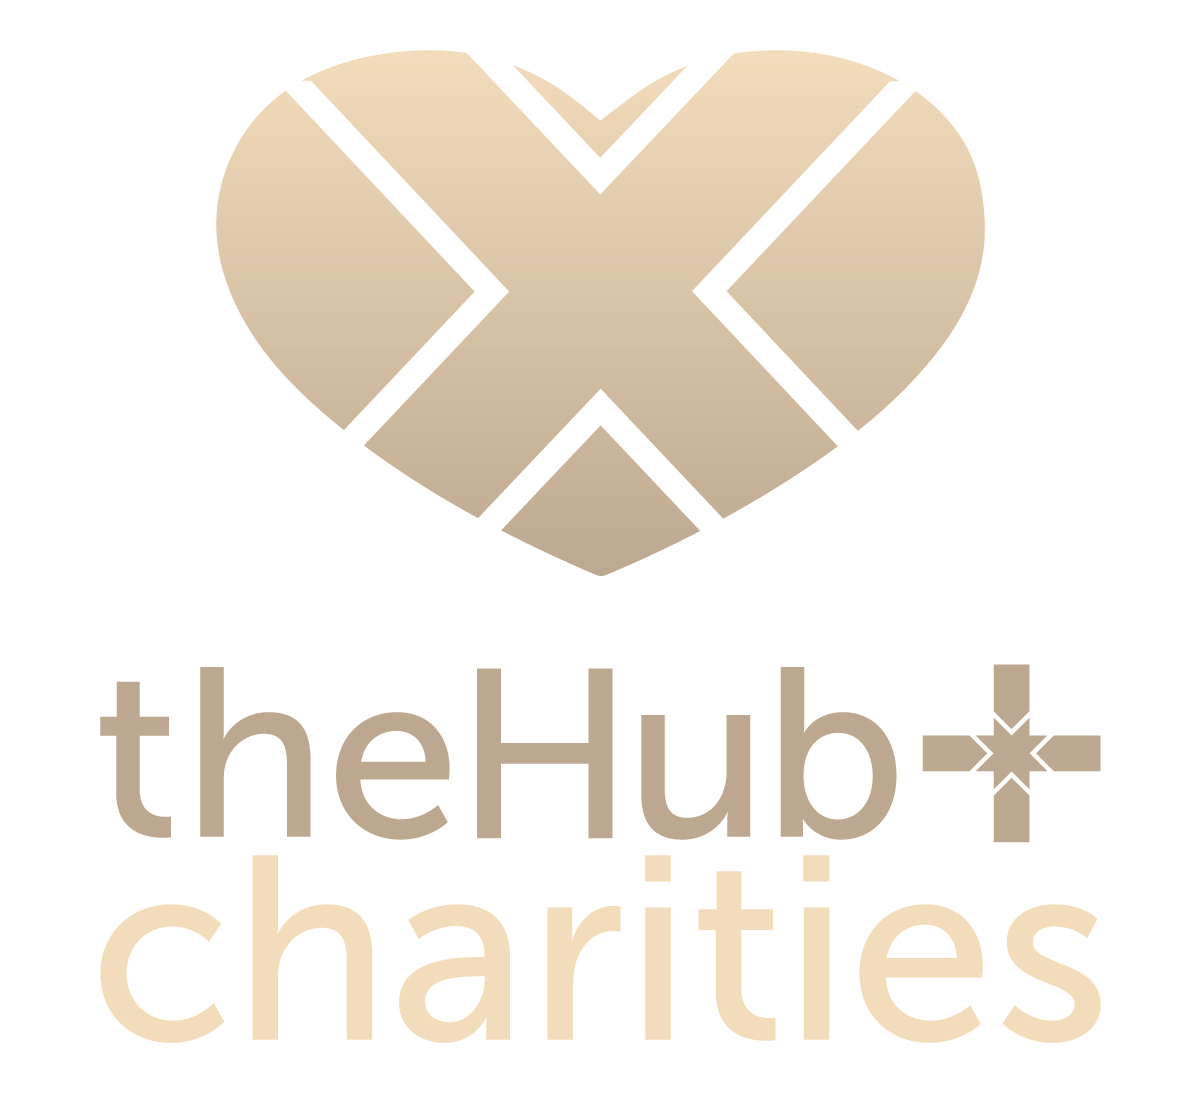 DOSE Design and Marketing the Hub pharmacy charities logotype